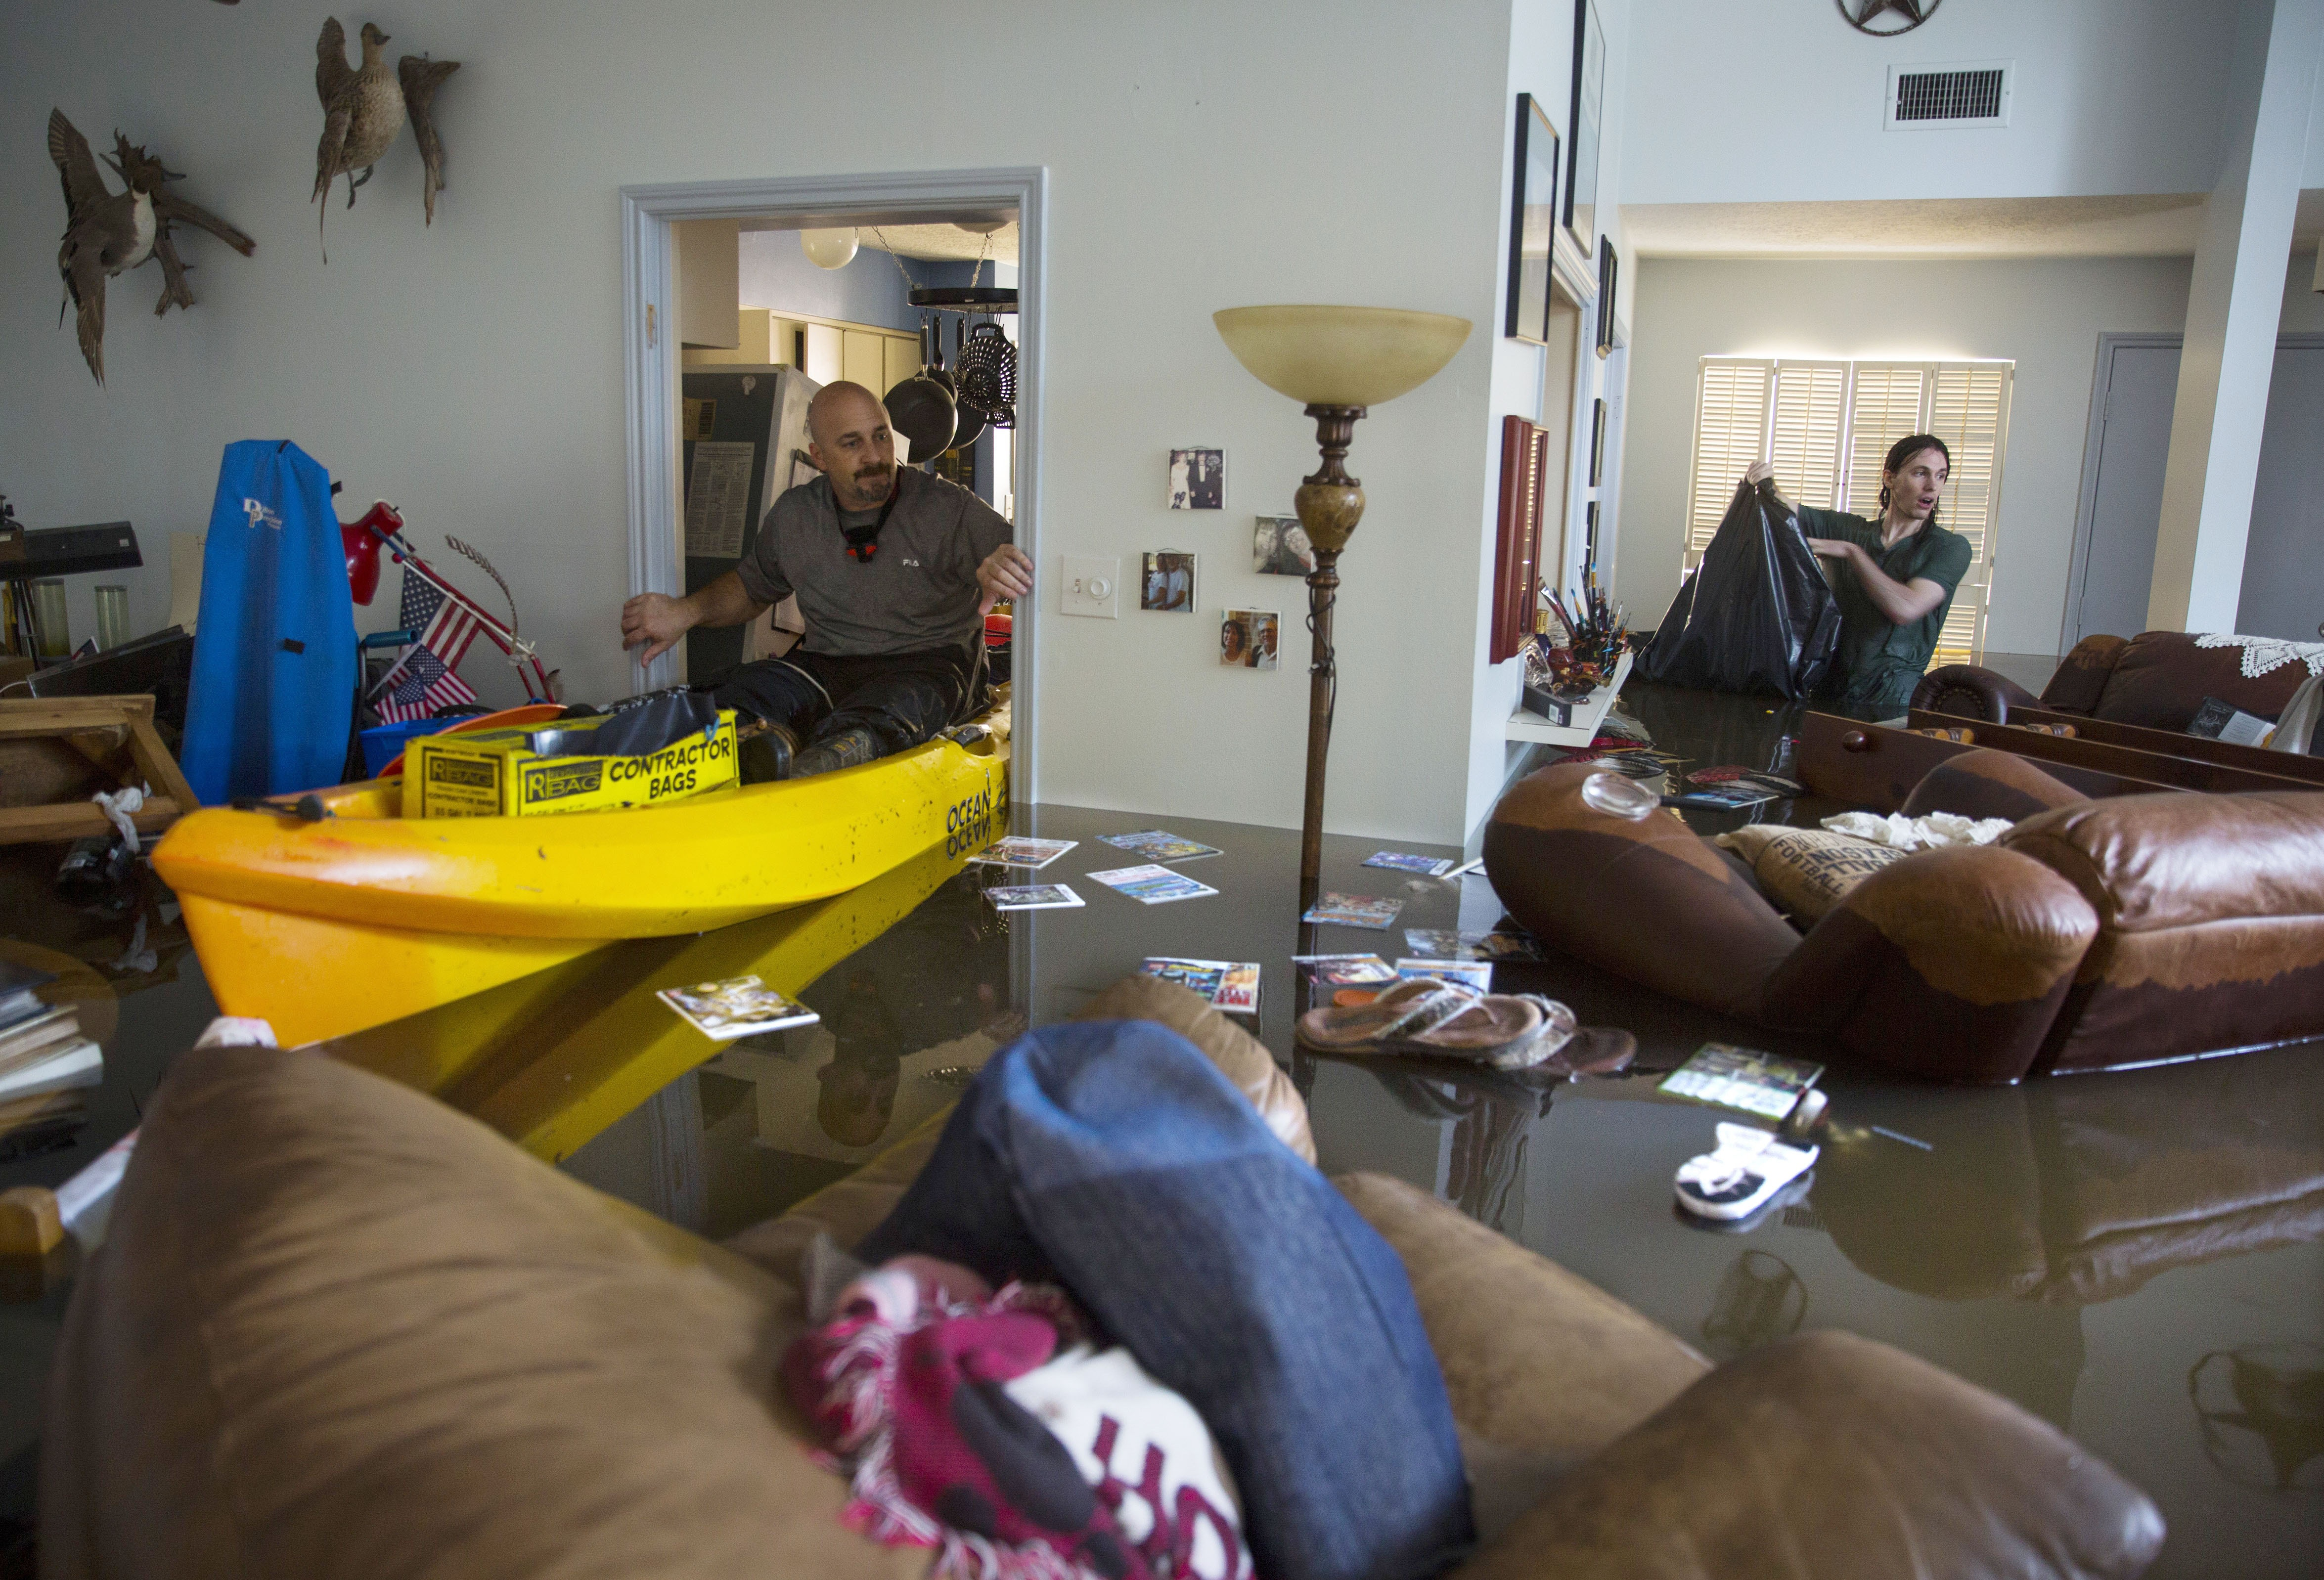 HOUSTON, TX - AUGUST 29:  Larry Koser Jr. (L) and his son Matthew look for important papers and heirlooms inside Larry Koser Sr.'s house after it was flooded by heavy rains from Hurricane Harvey August 29, 2017 in the Bear Creek neighborhood of west Houston, Texas. The neighborhood flooded after water was release from nearby Addicks Reservoir. (Photo by Erich Schlegel/Getty Images)